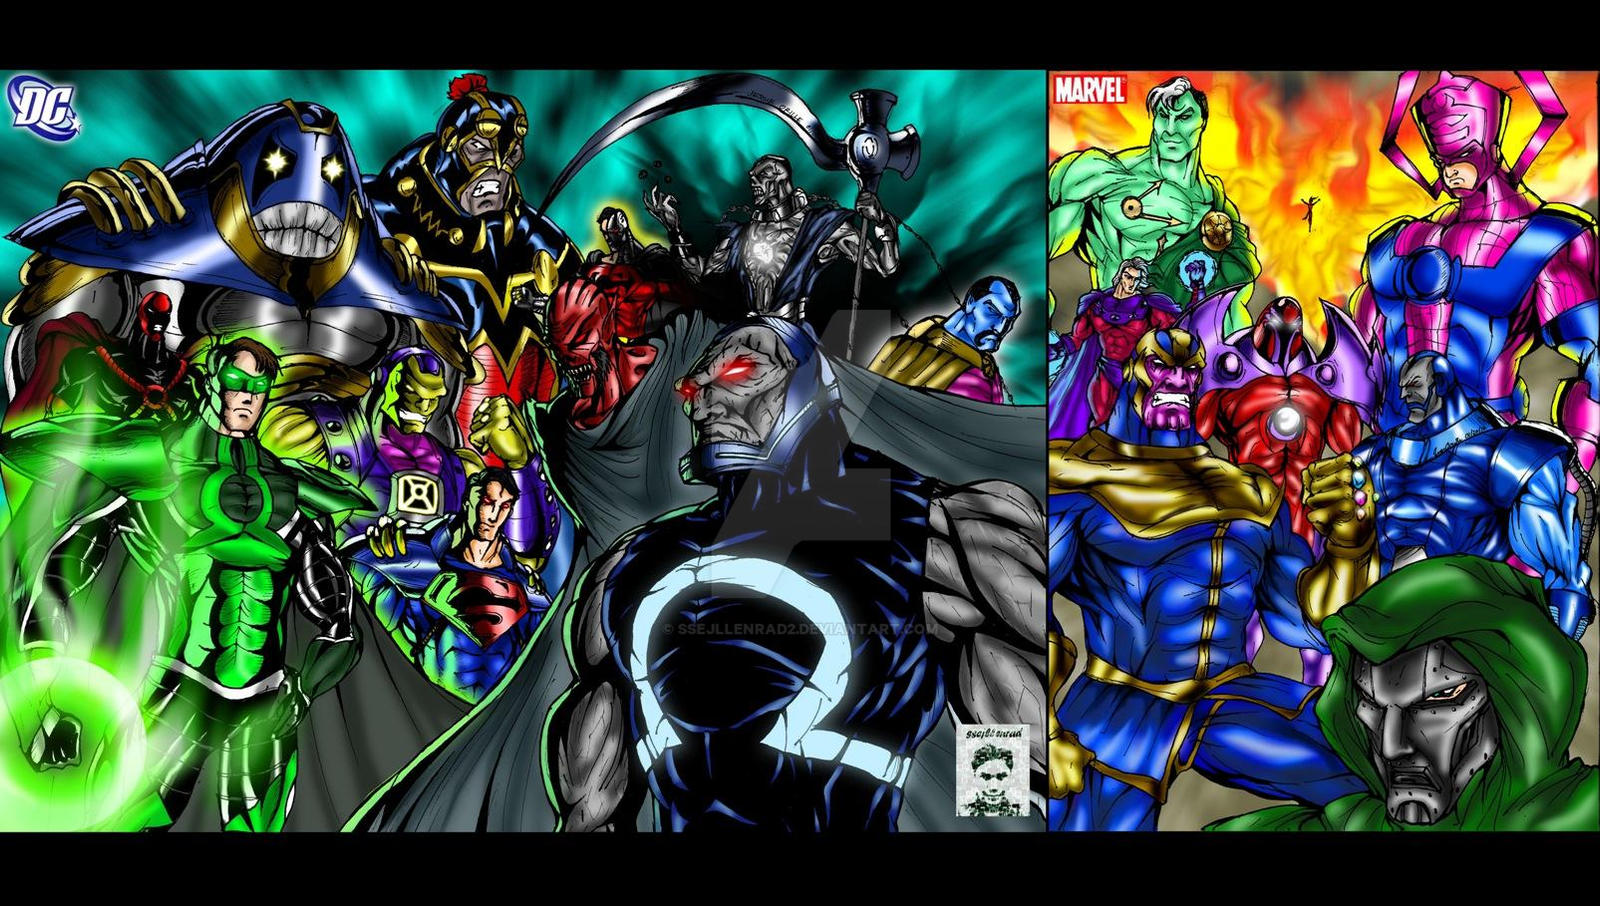 Villains DC And Marvel By Ssejllenrad2